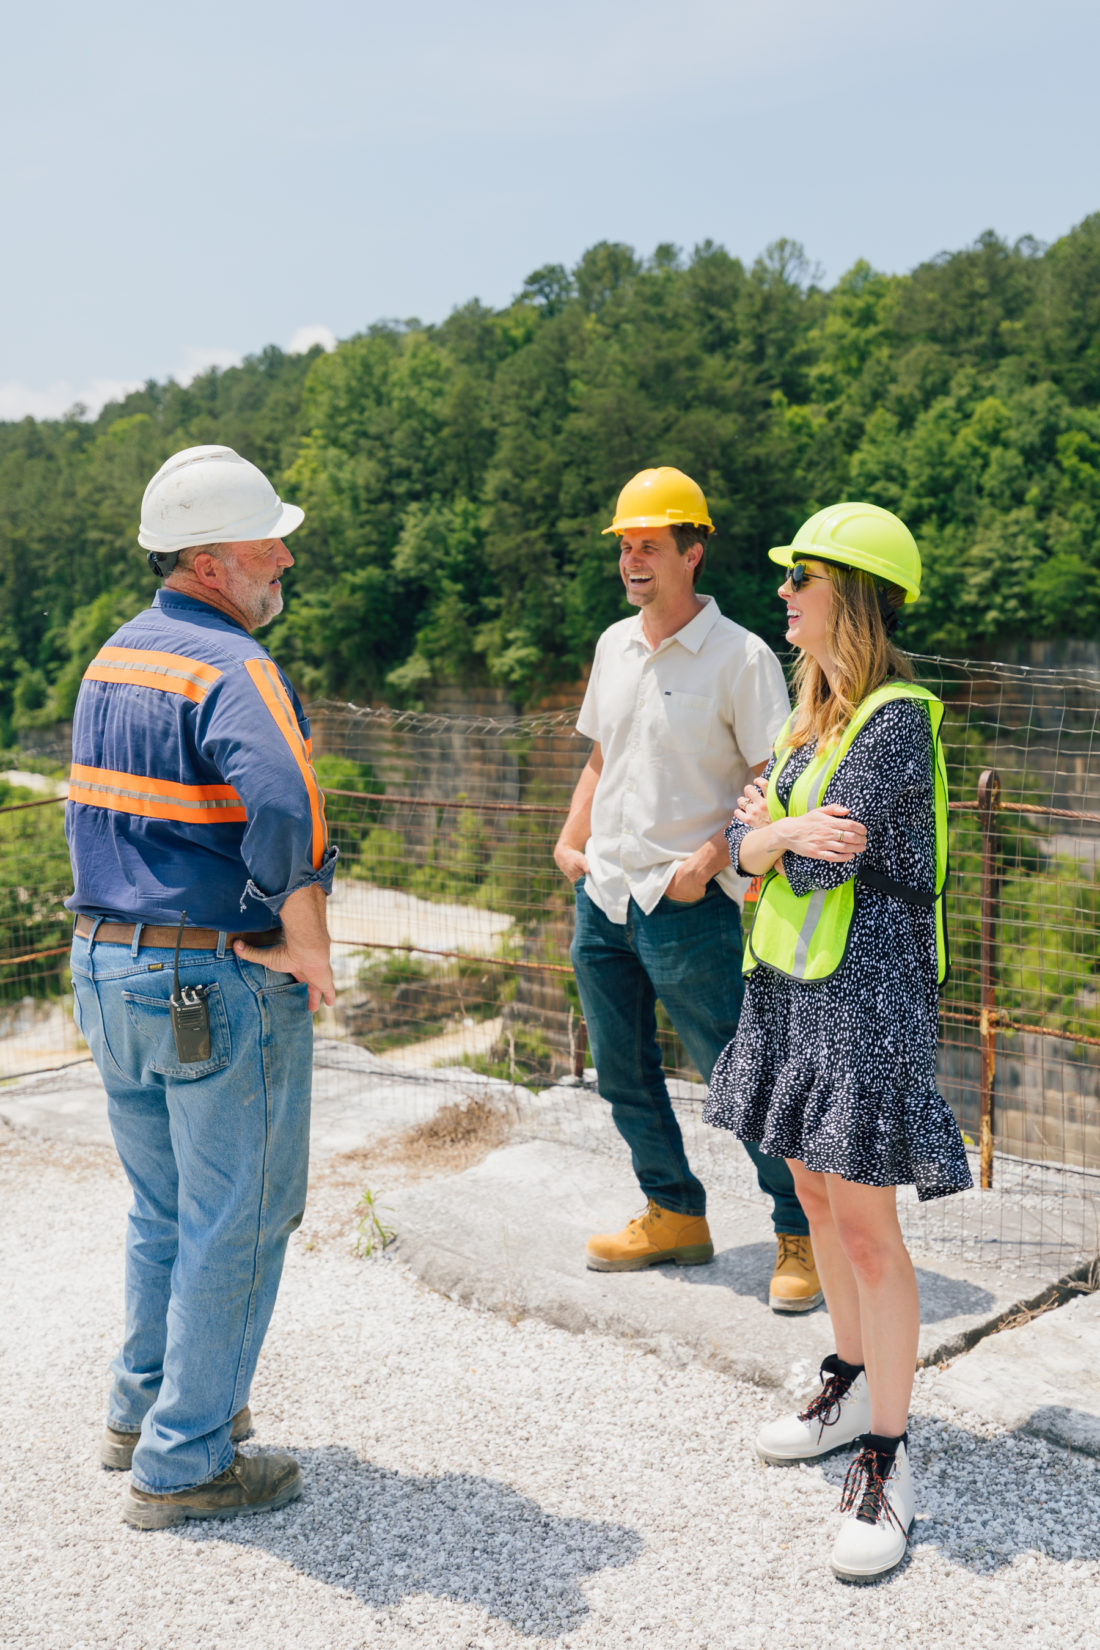 Eva Amurri Martino and Steve Shrenk of Polycor at the Polycor quarry in Georgia